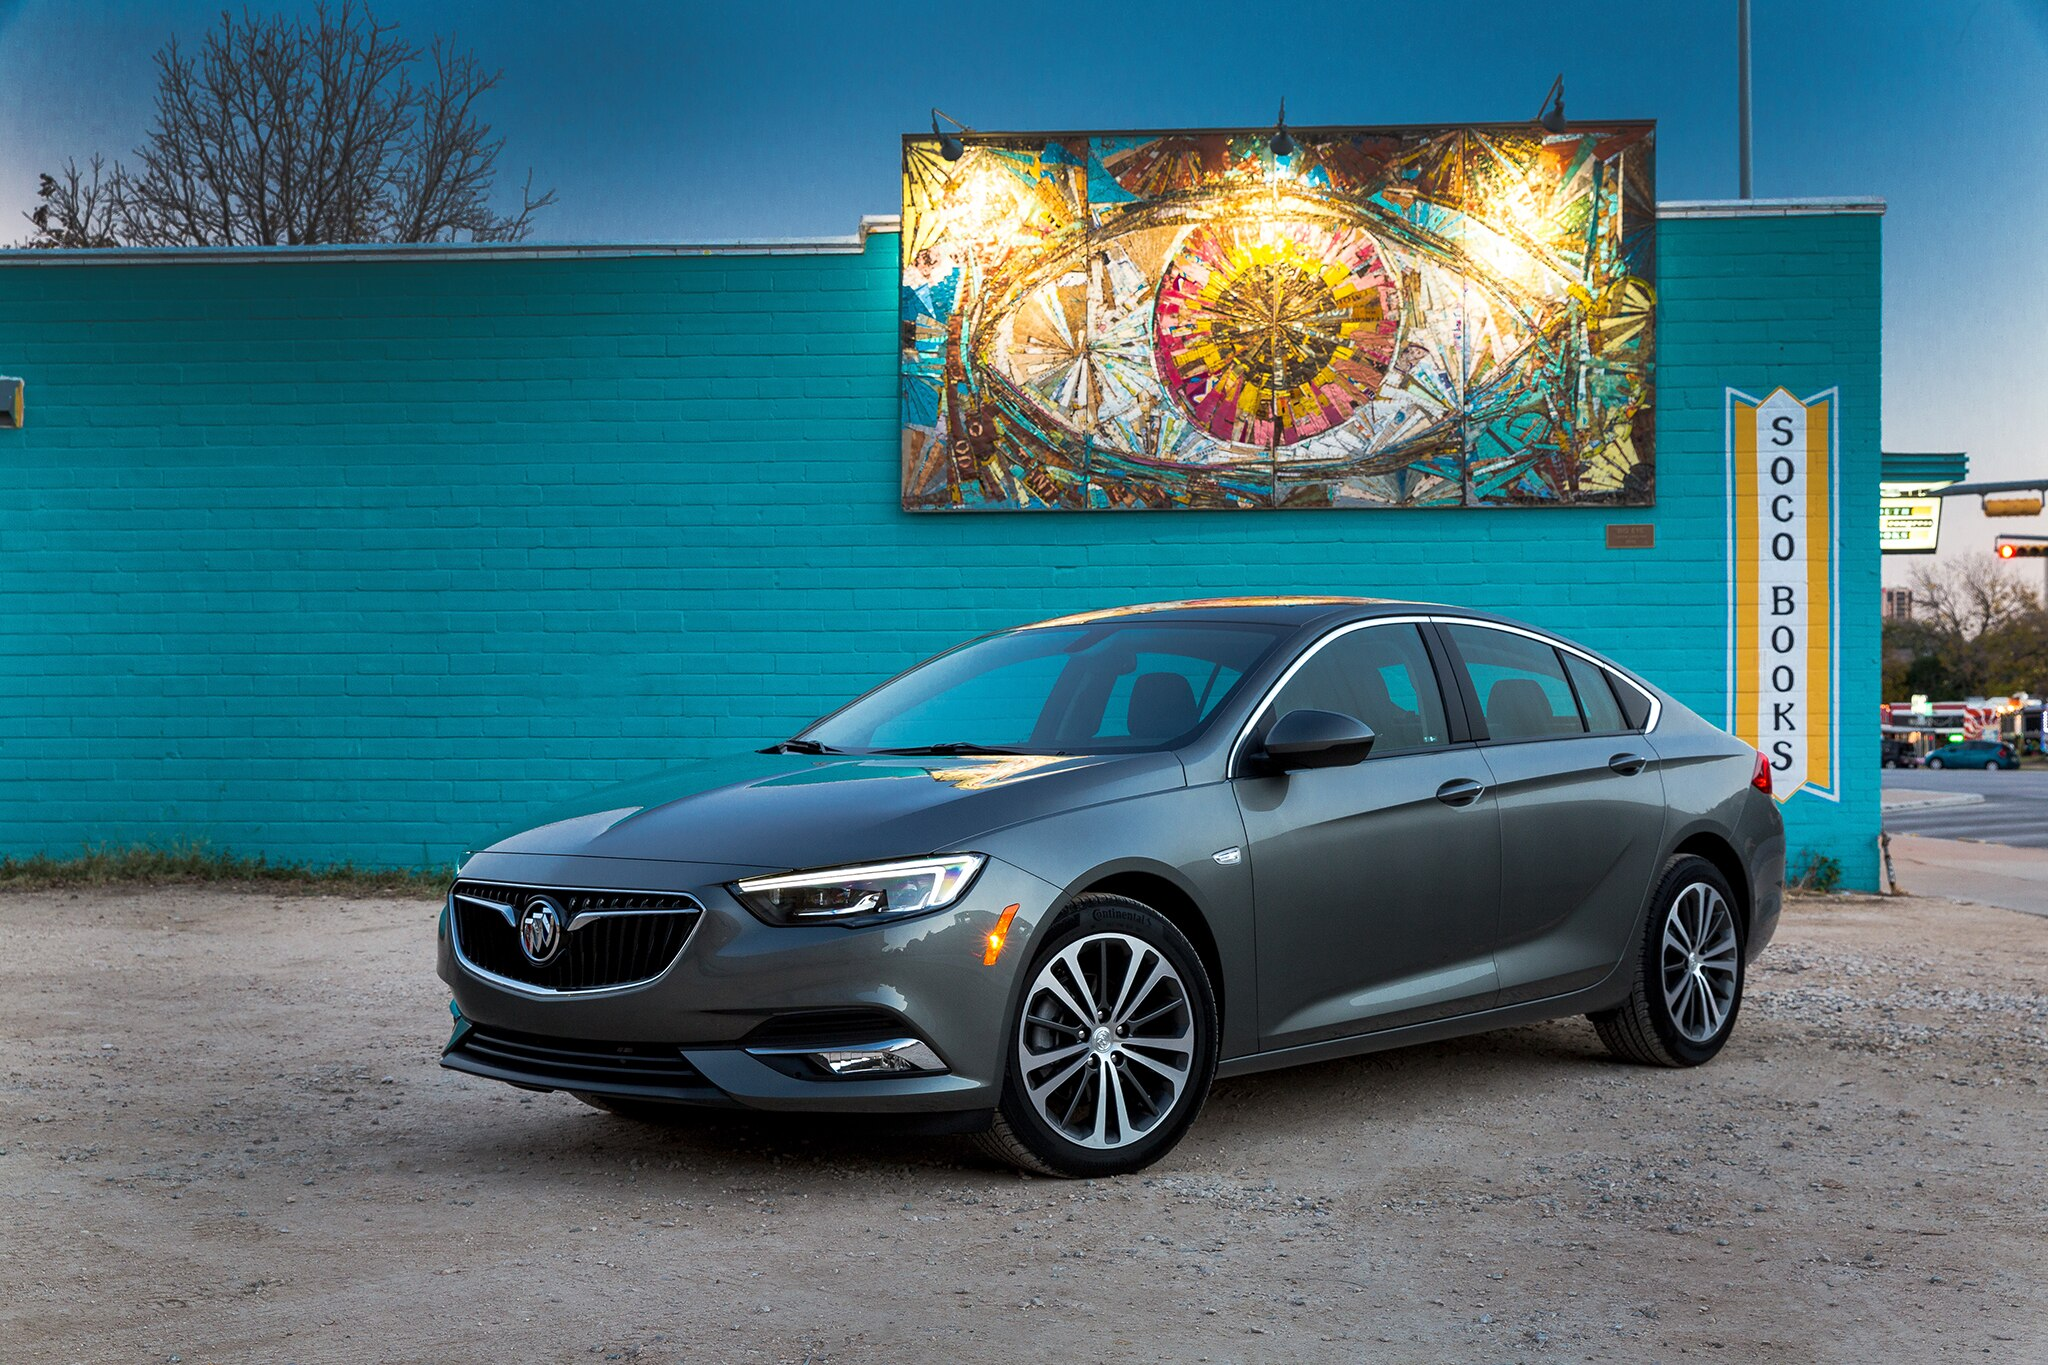 14 Buick Regal Gs >> Eight Cool Things You Need to Know About the 2018 Buick Regal | Automobile Magazine